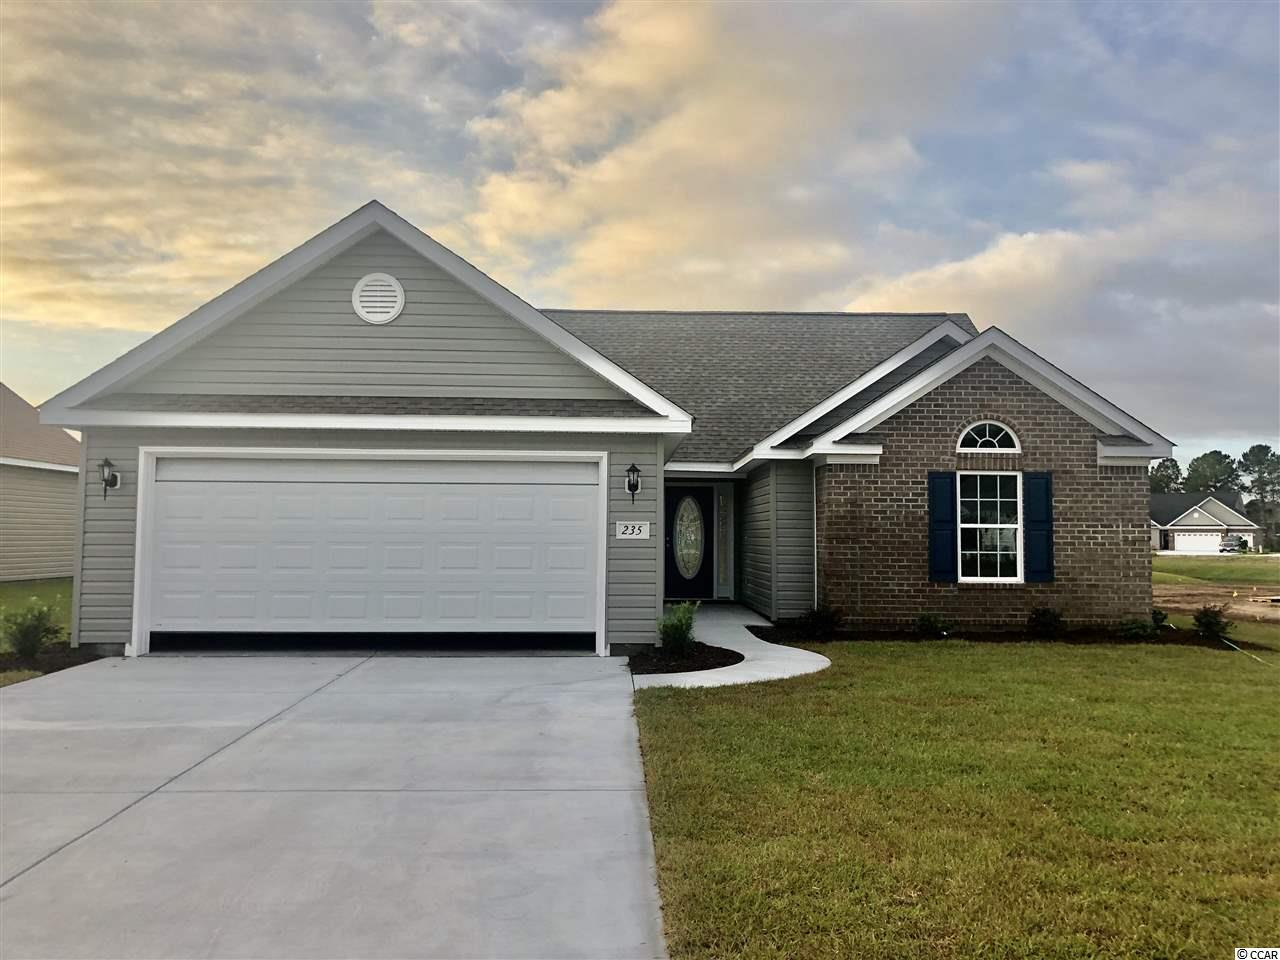 Beautiful new home   The Holly Model modified  is a 3 bedroom 2 bath home w a 2 car garage with Hardwood floors, tile, granite,brick accent, large patio, stainless steel appliances